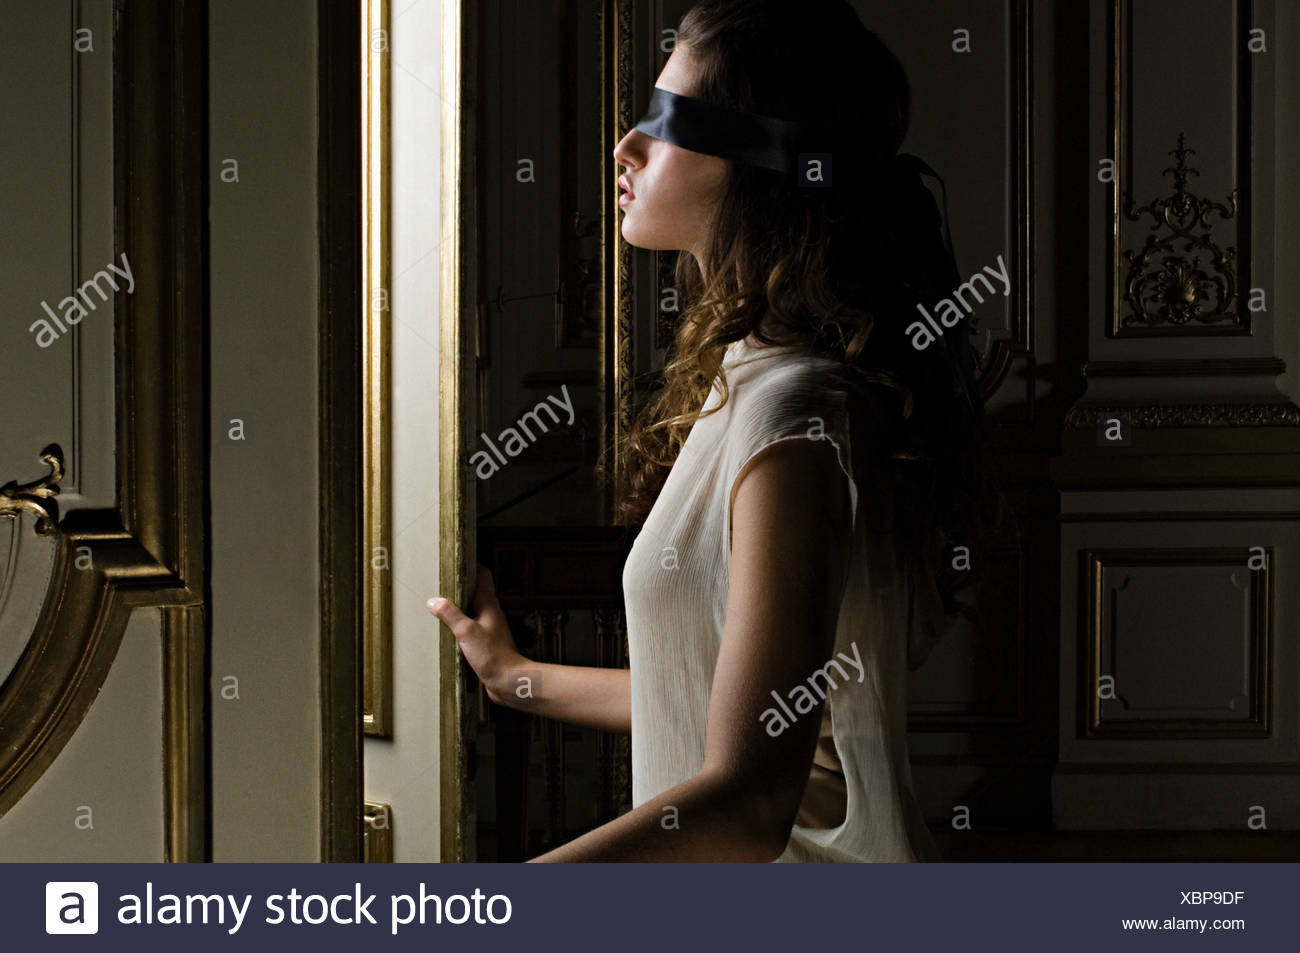 Blindfolded woman opening door Stock Photo